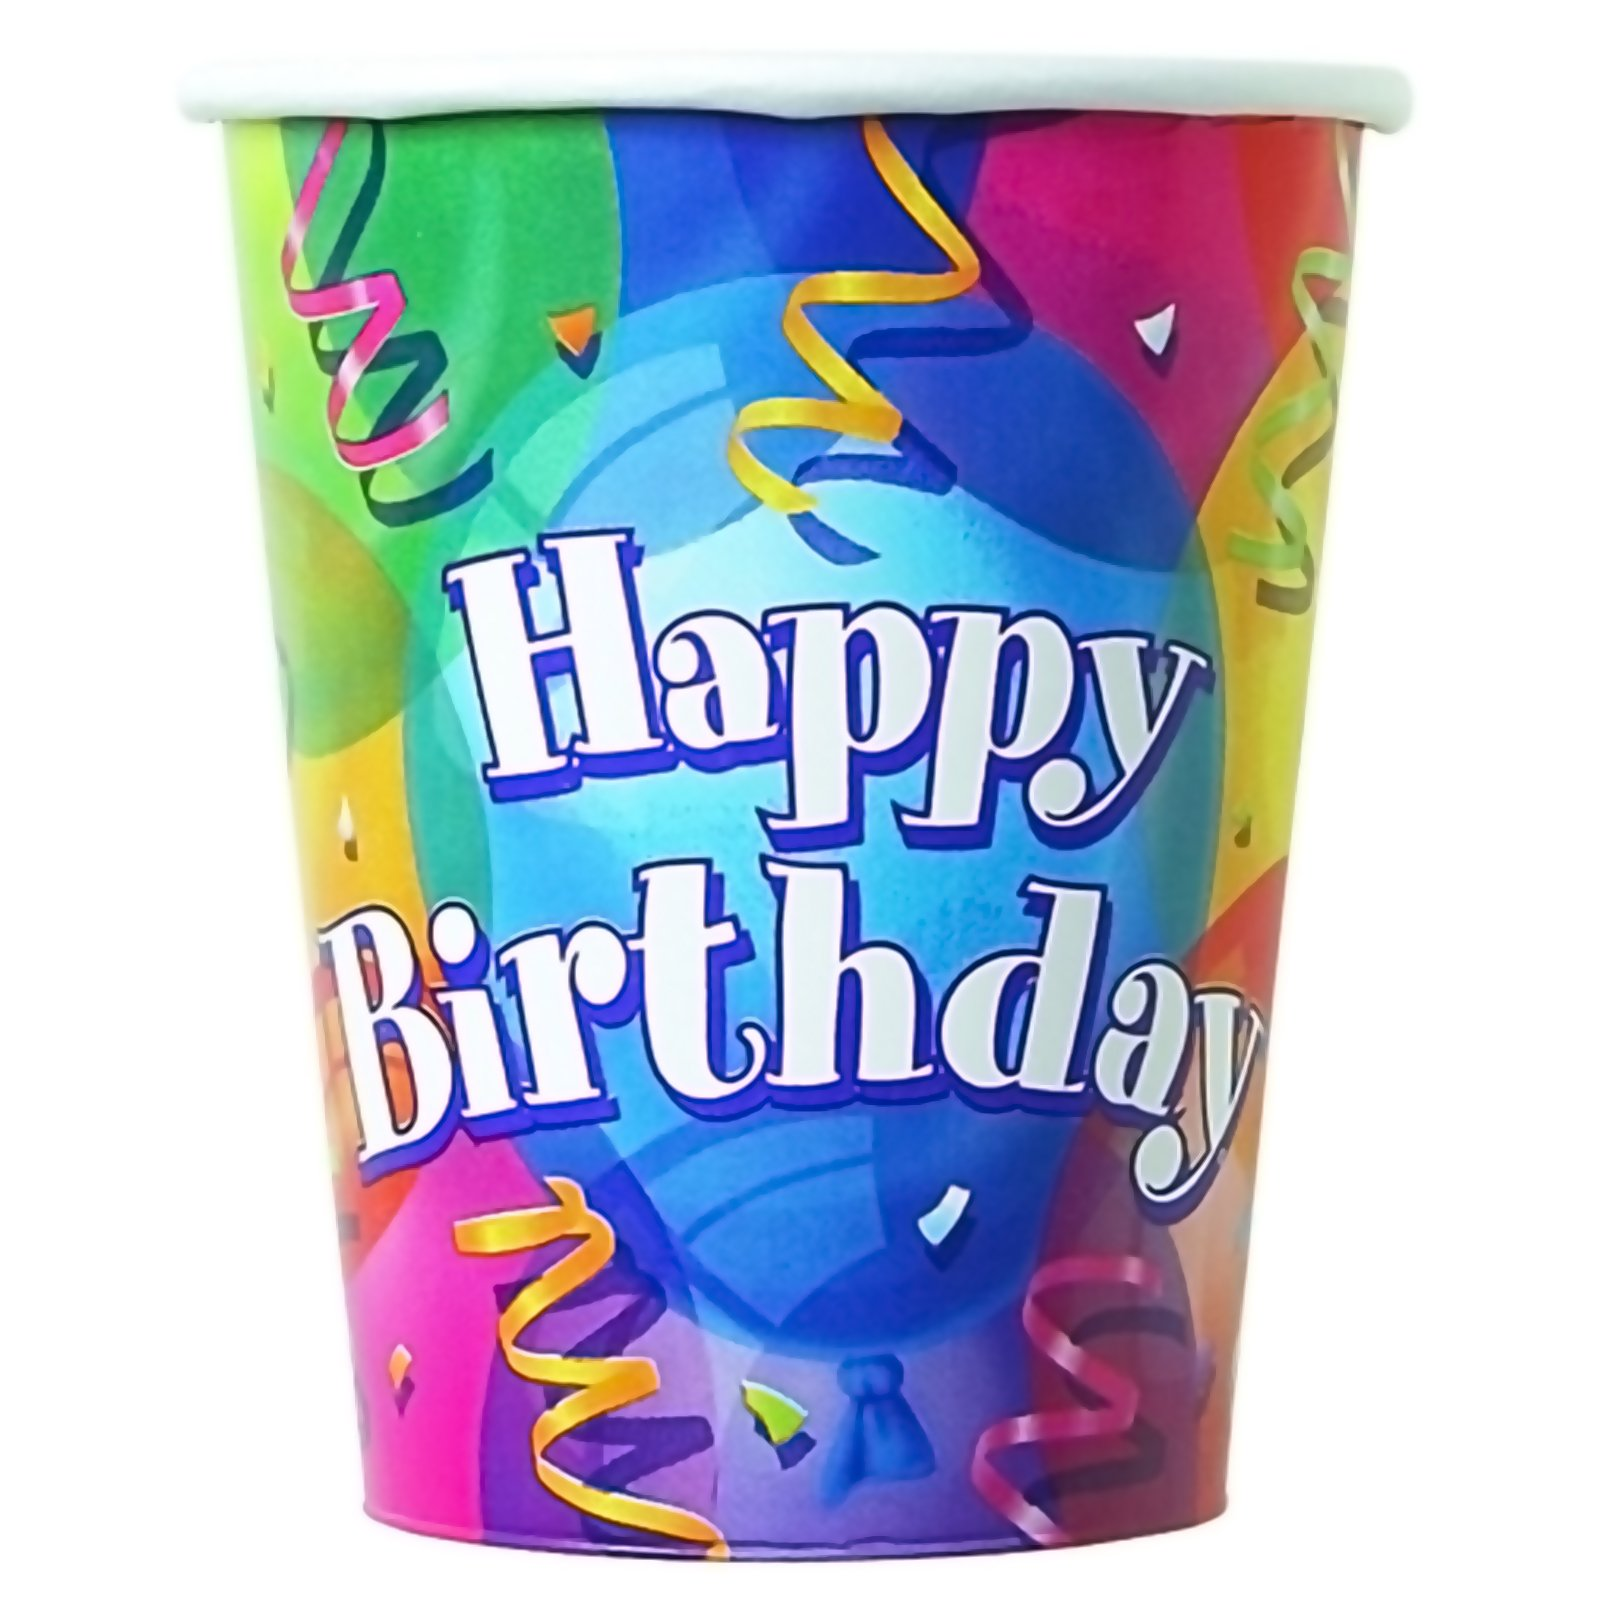 Brilliant Birthday 9 oz. Paper Cups (8 count)